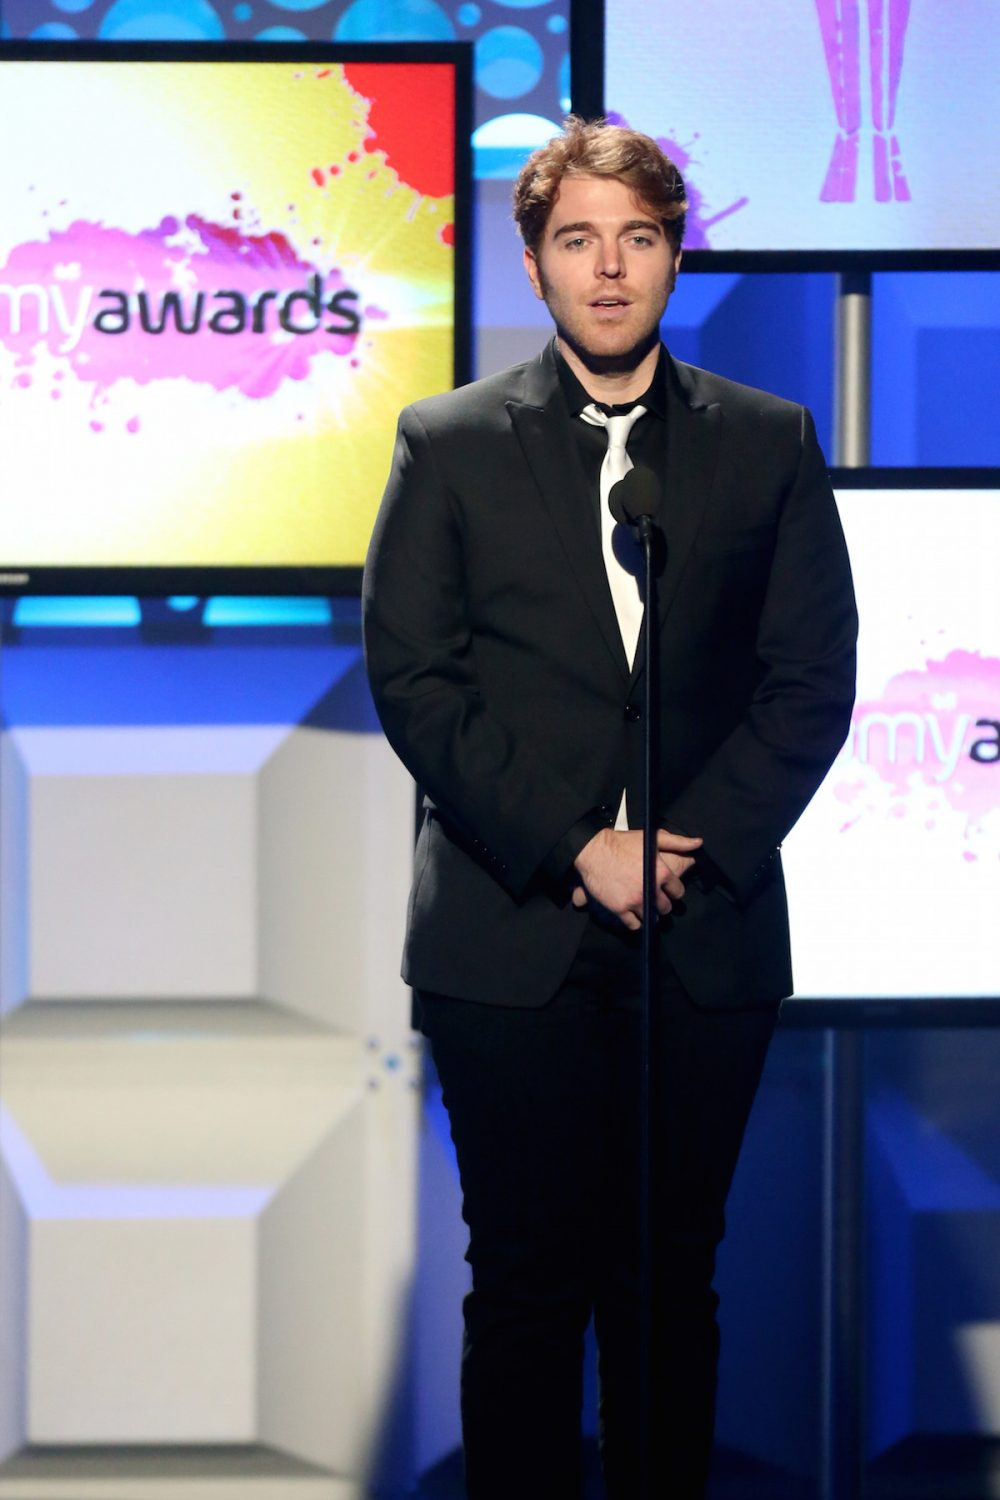 BEVERLY HILLS, CA - OCTOBER 04: Internet personality Shane Dawson speaks onstage during a tribute to the late Christina Grimmie the 6th annual Streamy Awards hosted by King Bach and live streamed on YouTube at The Beverly Hilton Hotel on October 4, 2016 in Beverly Hills, California. (Photo by Frederick M. Brown/Getty Images for dick clark productions )